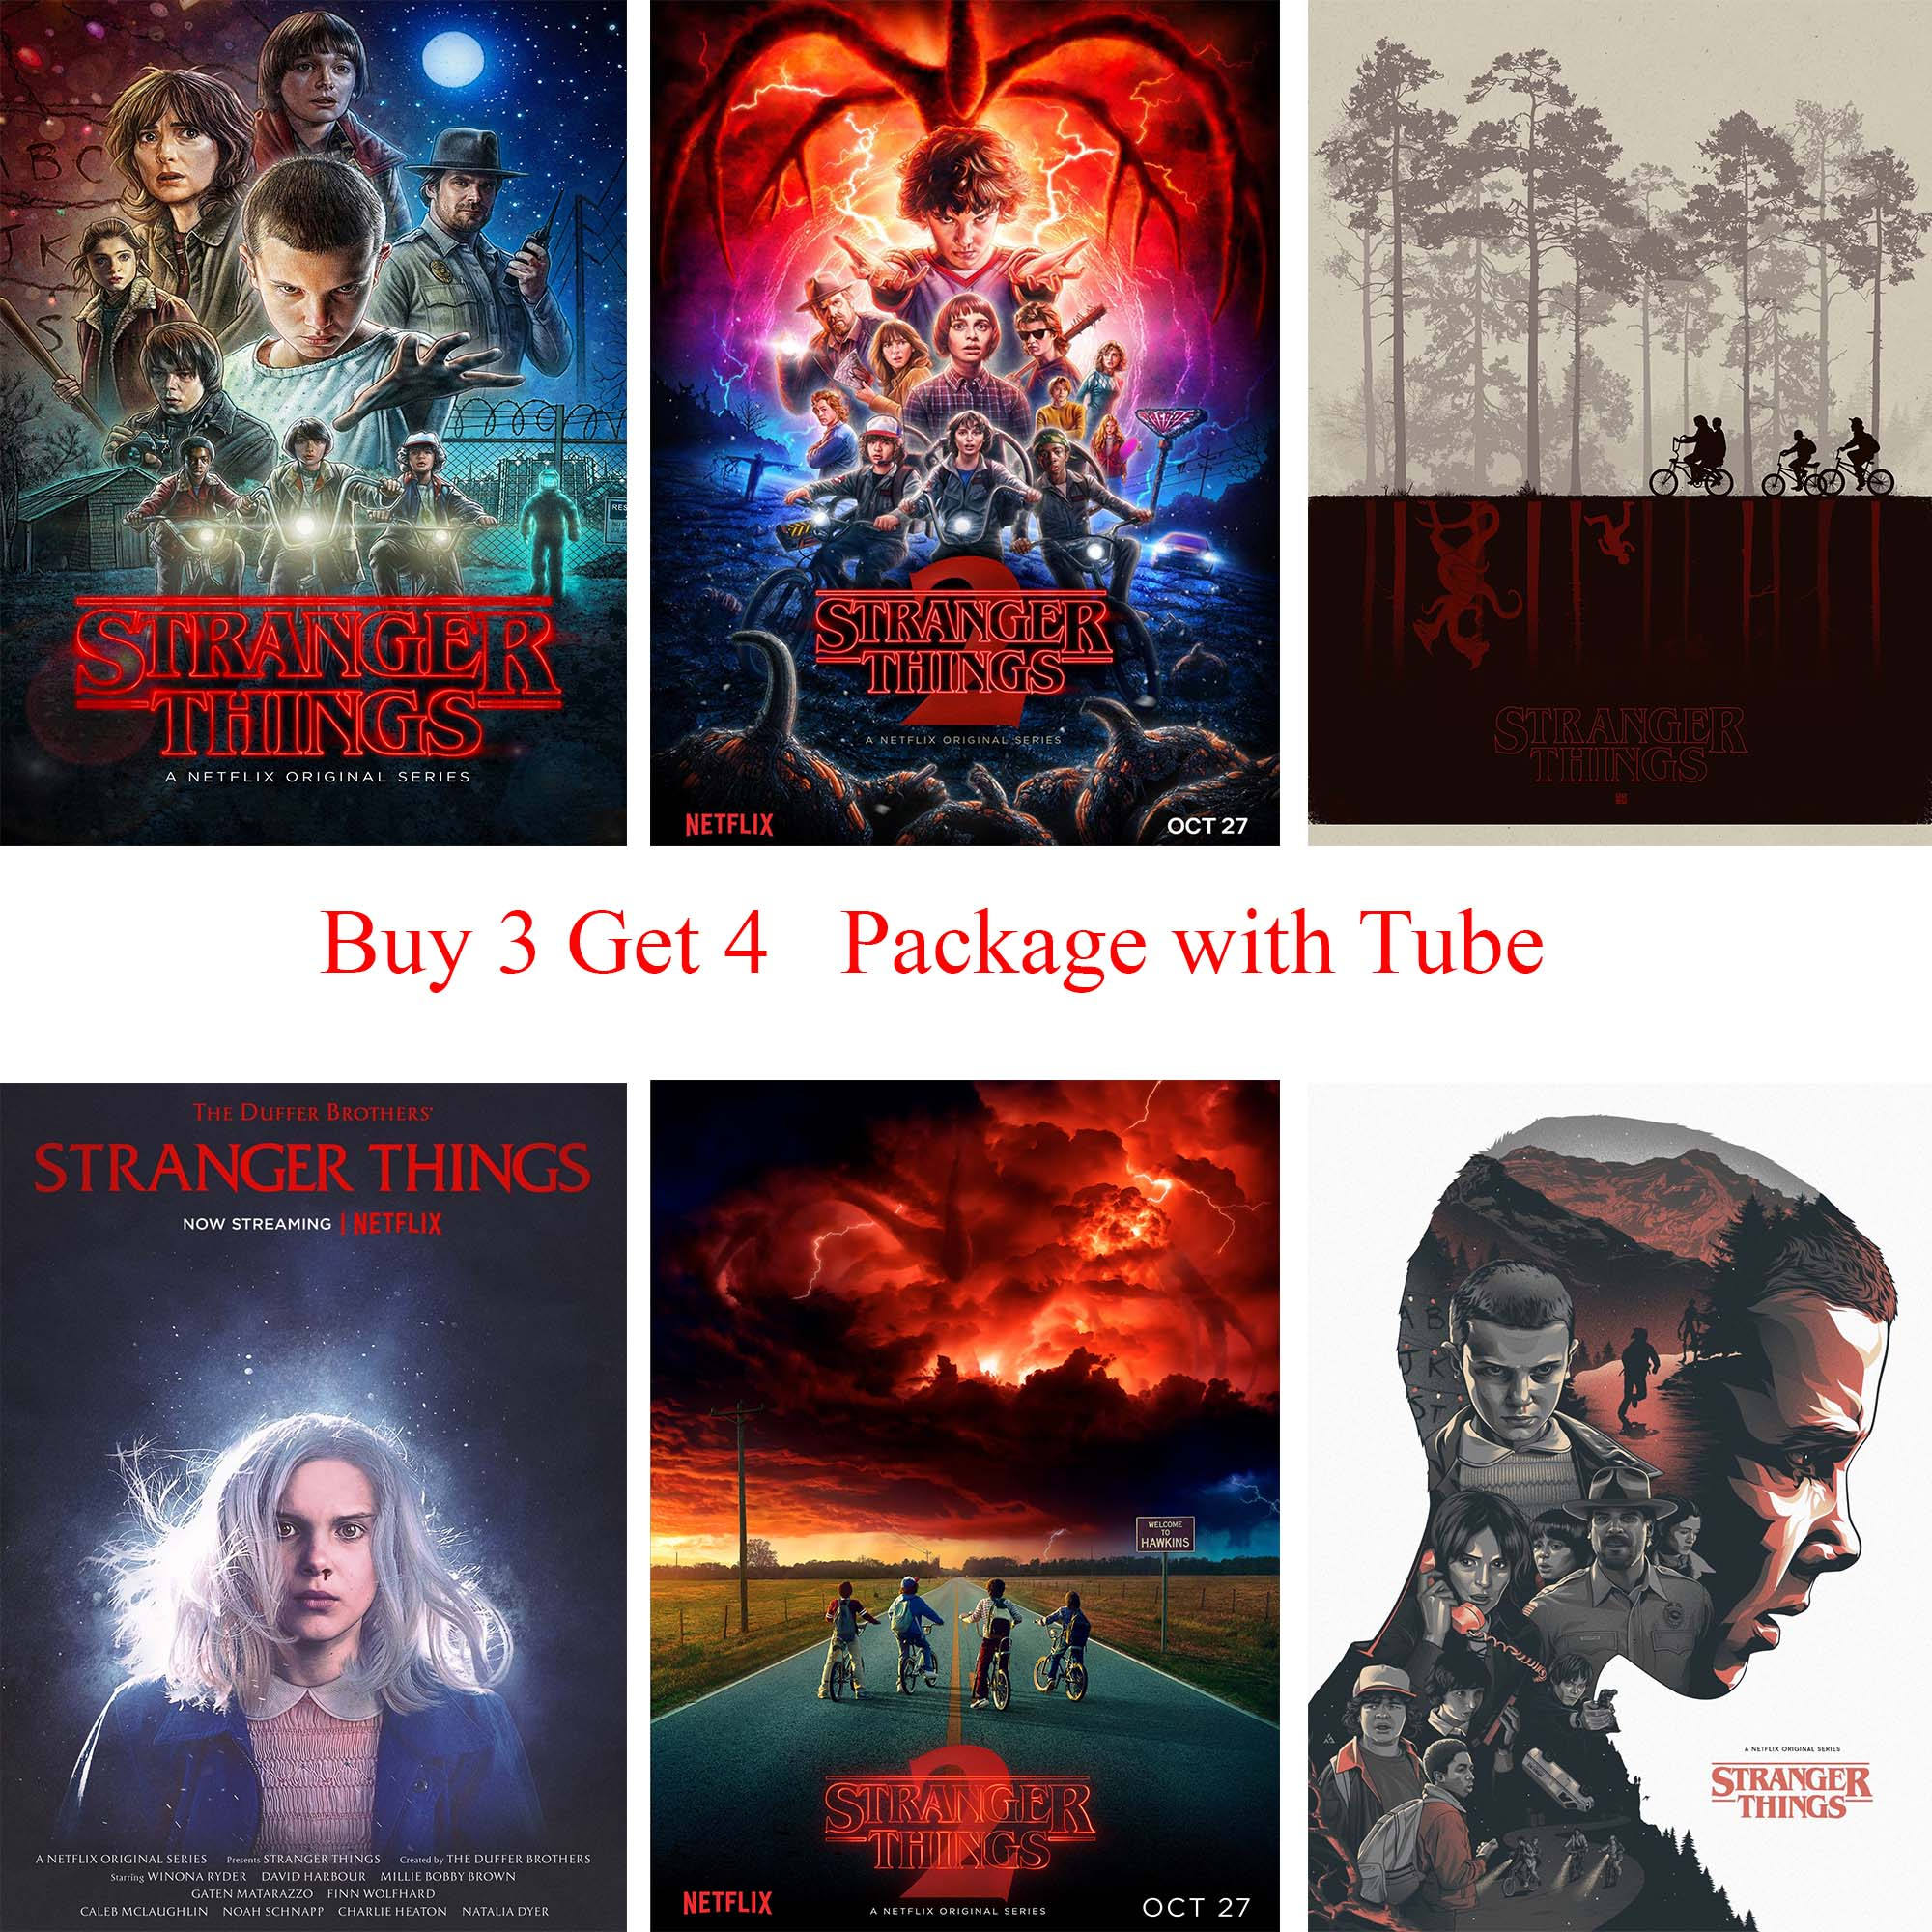 Stranger Things Season 2 Movie Posters Wall Stickers White Coated Paper Prints Home Decoration Home Art Brand scuba dive light